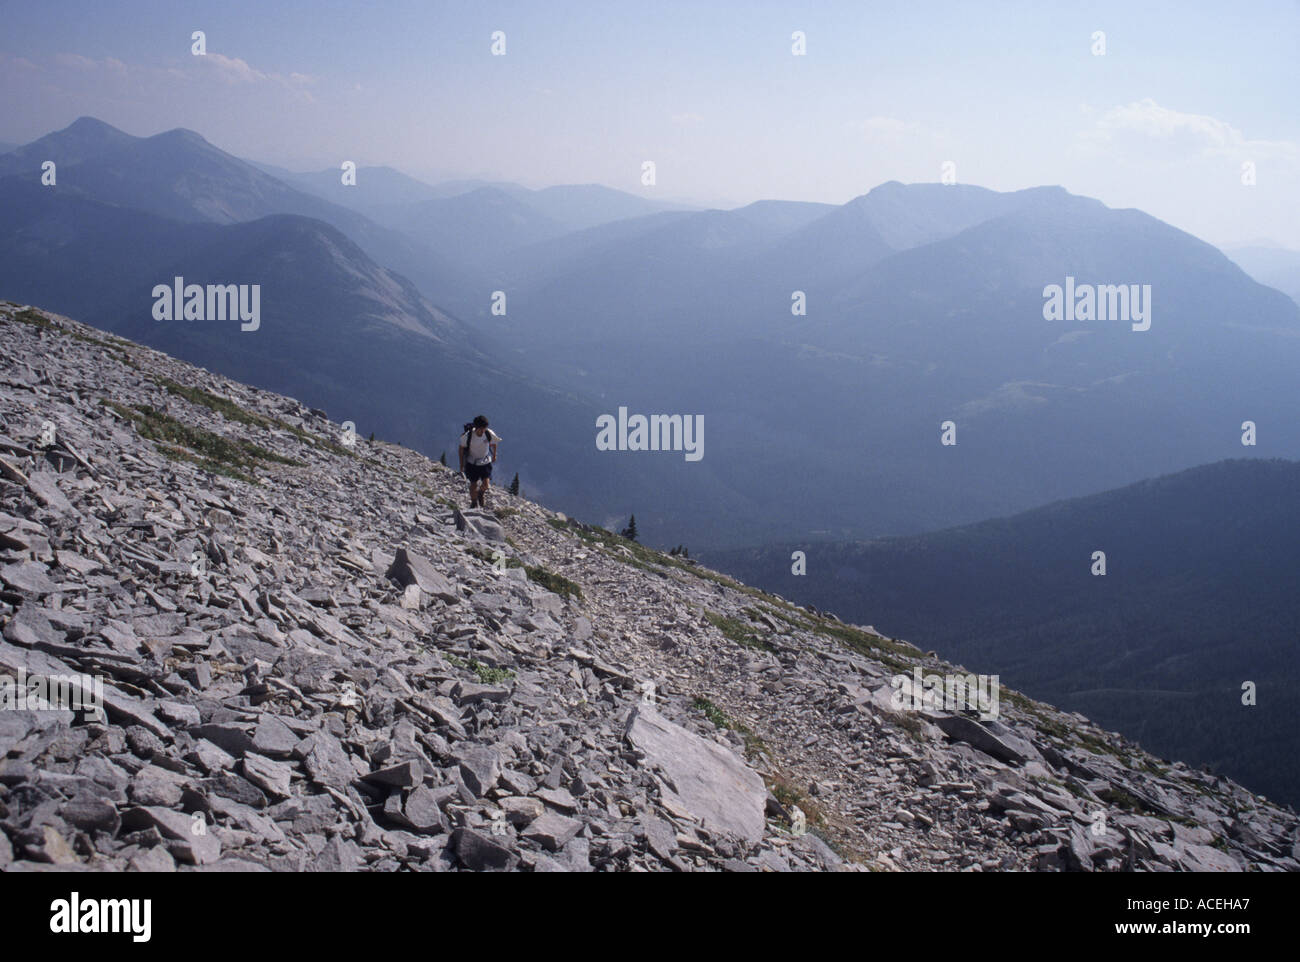 A hiker on the Half Dome Crag Trail in the Badger-Two Medicine roadless area of the Northern Rocky Mountains, Montana,Stock Photo